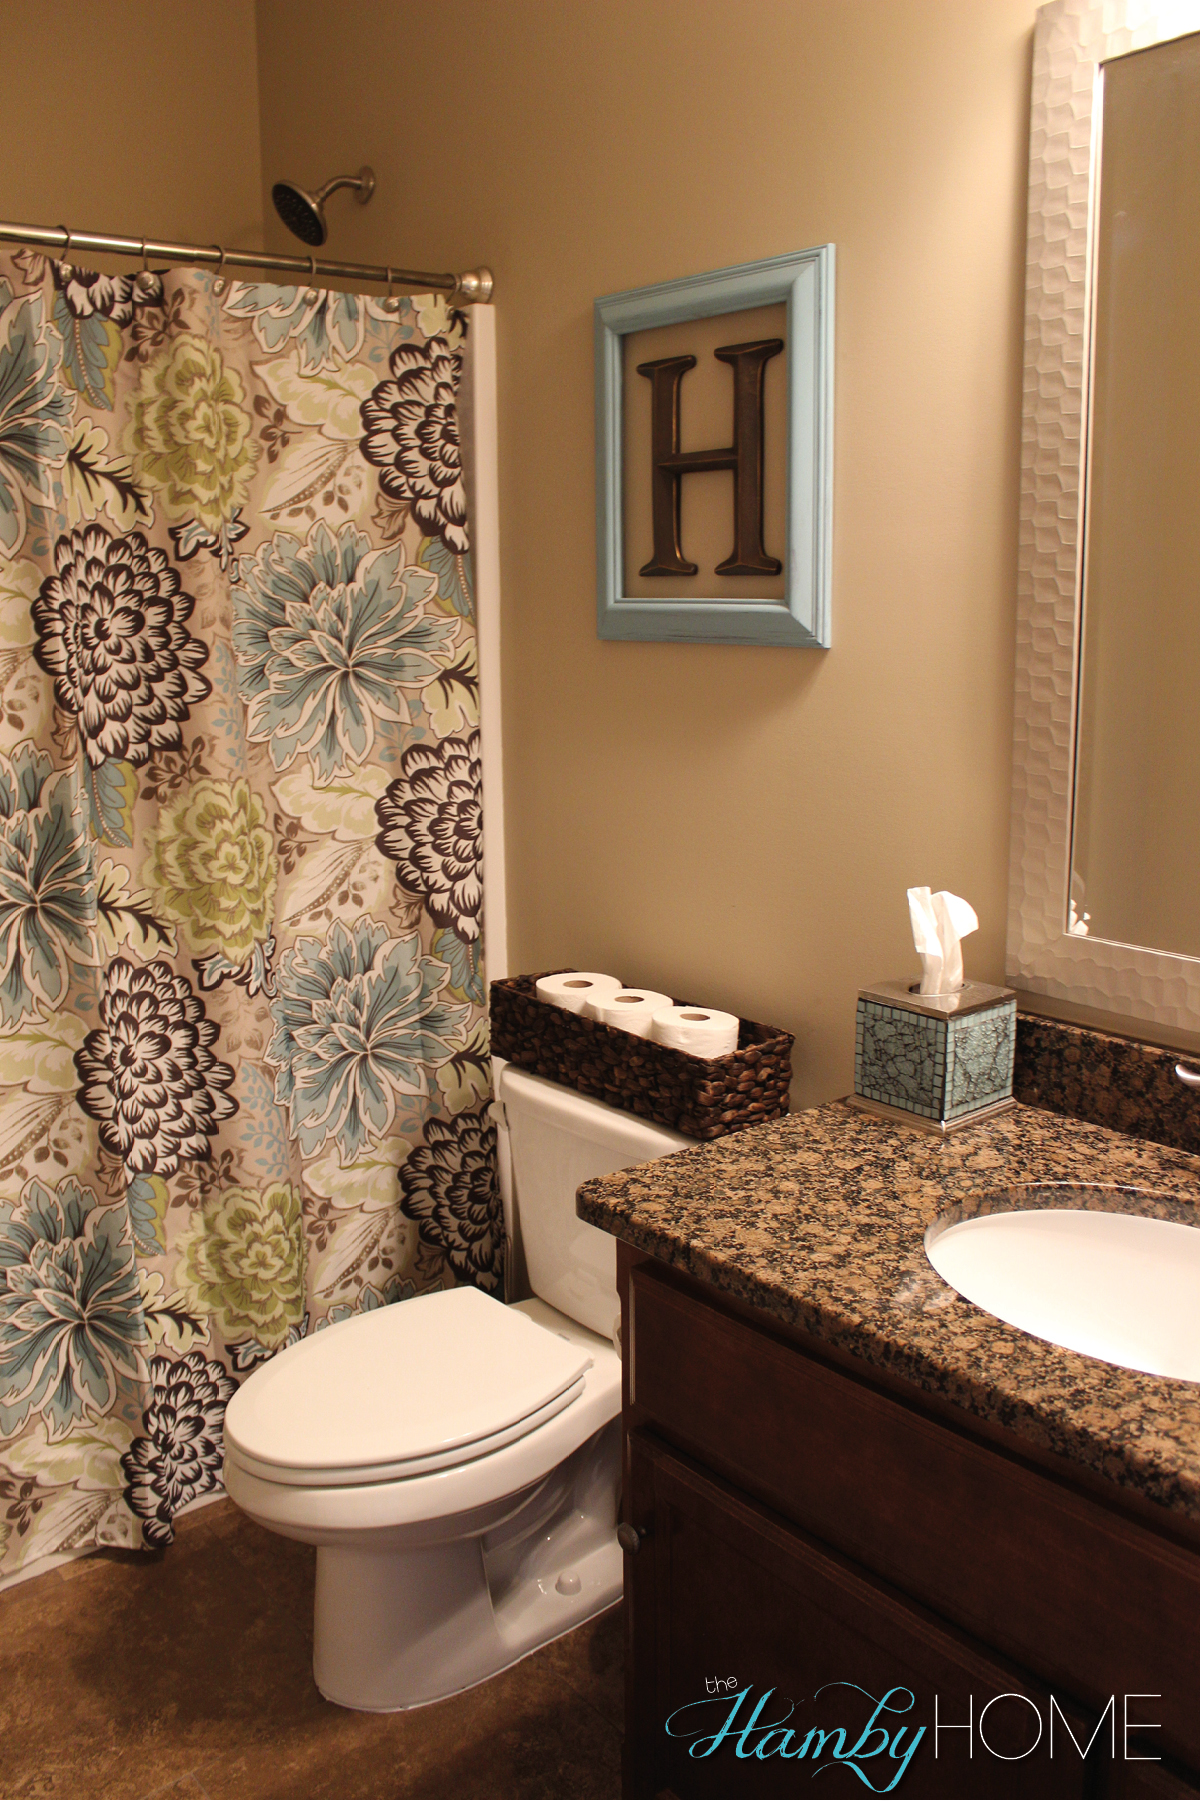 Tgif house tour guest bathroom the hamby home for Pics of bathroom decor